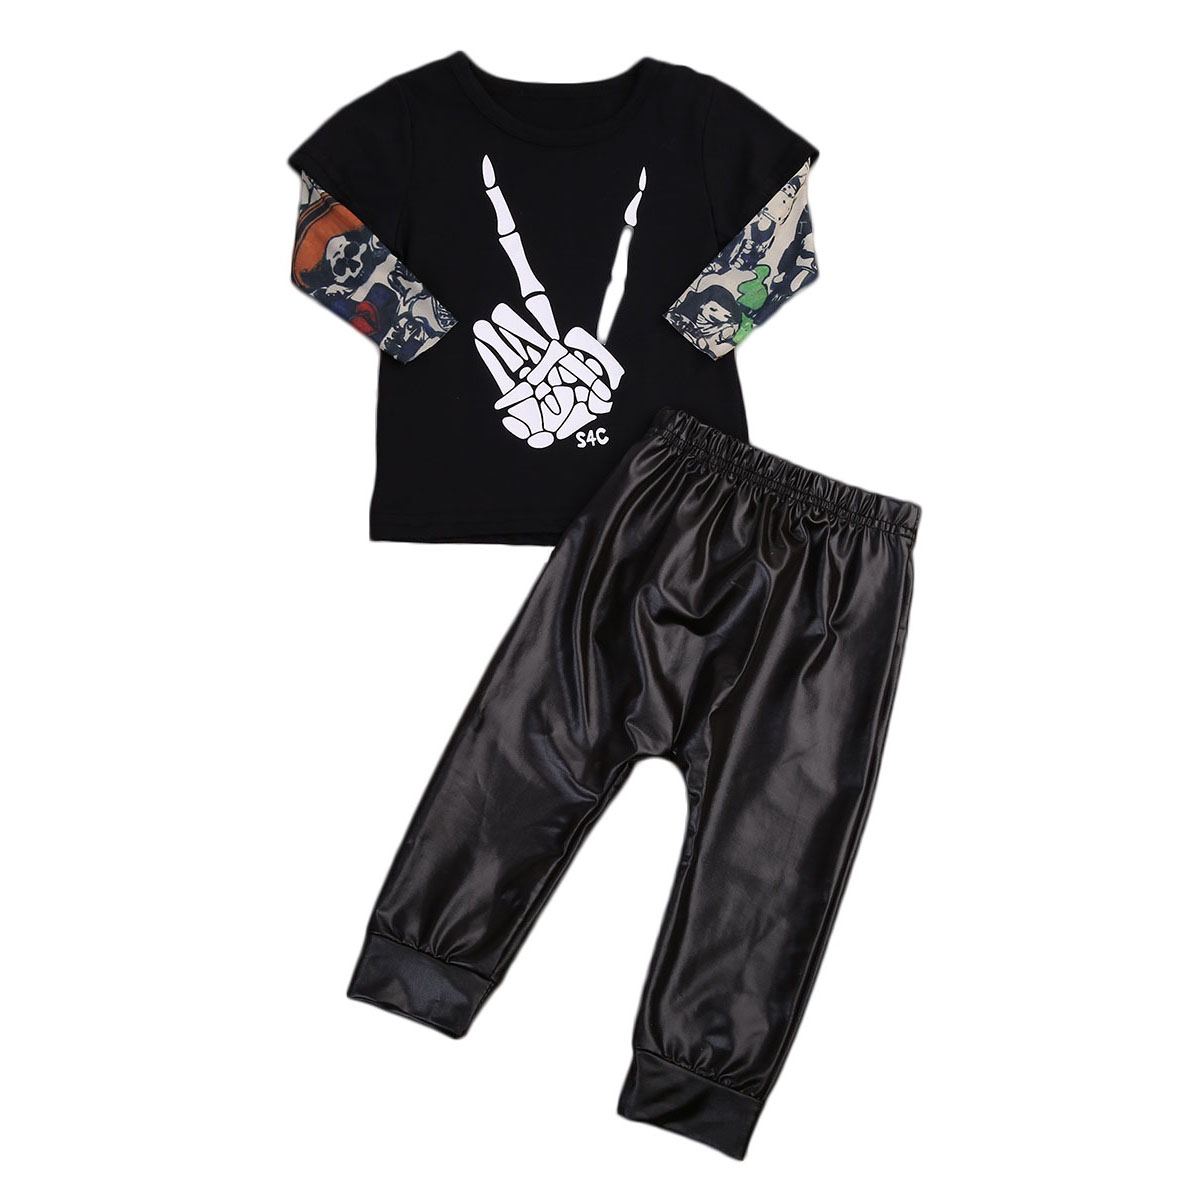 2PCS Infant Toddler Newborn Kids Baby Boys Cool Printed T-shirt Leather Long Pants Biker Boys Outfits Clothes Set